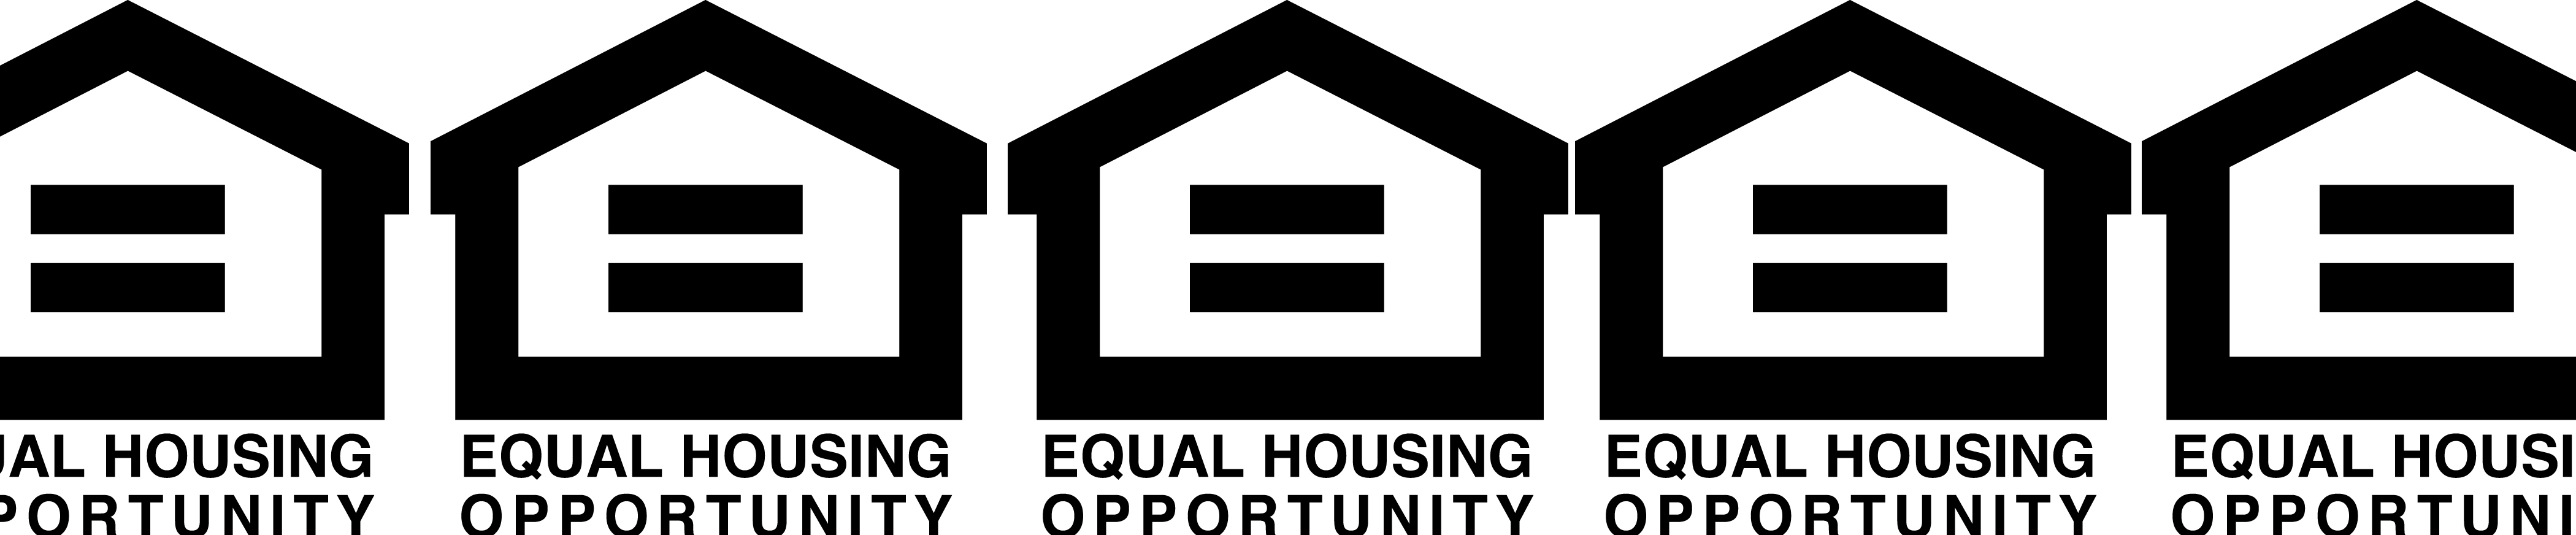 Housing opportunity is educational opportunity